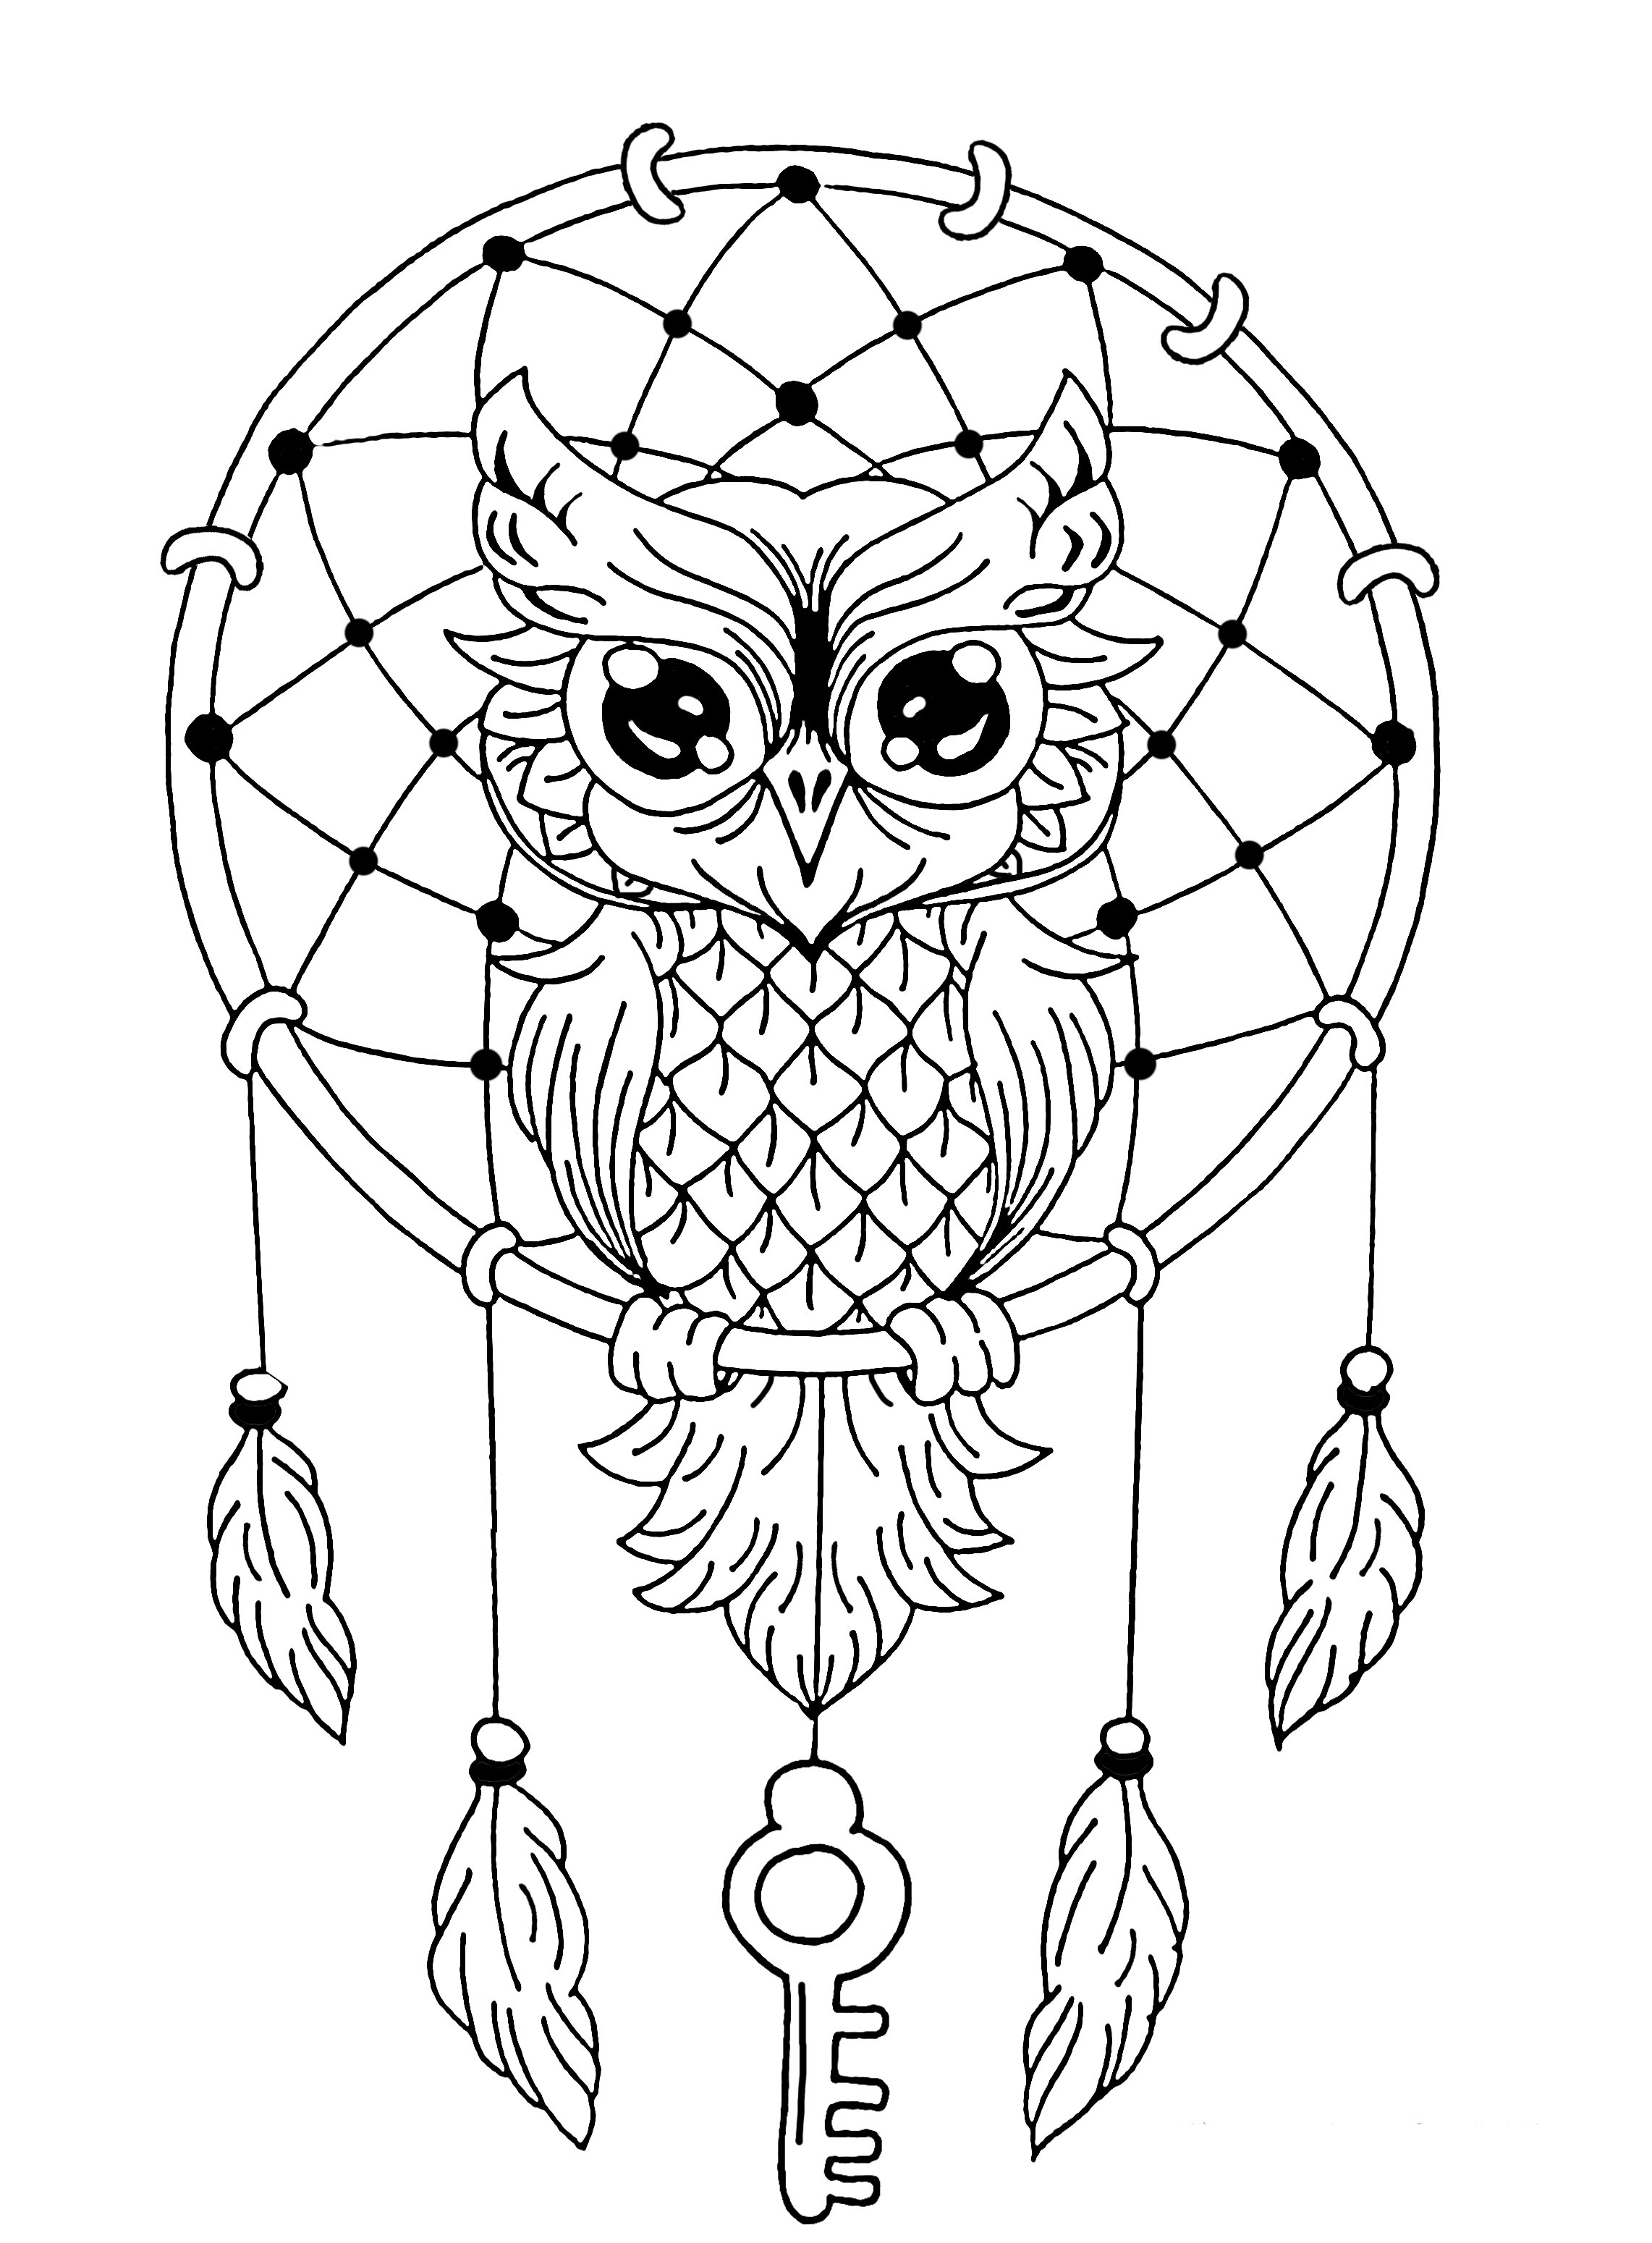 2283x3099 Native American Dreamcatcher Coloring Page Free Printable In Dream